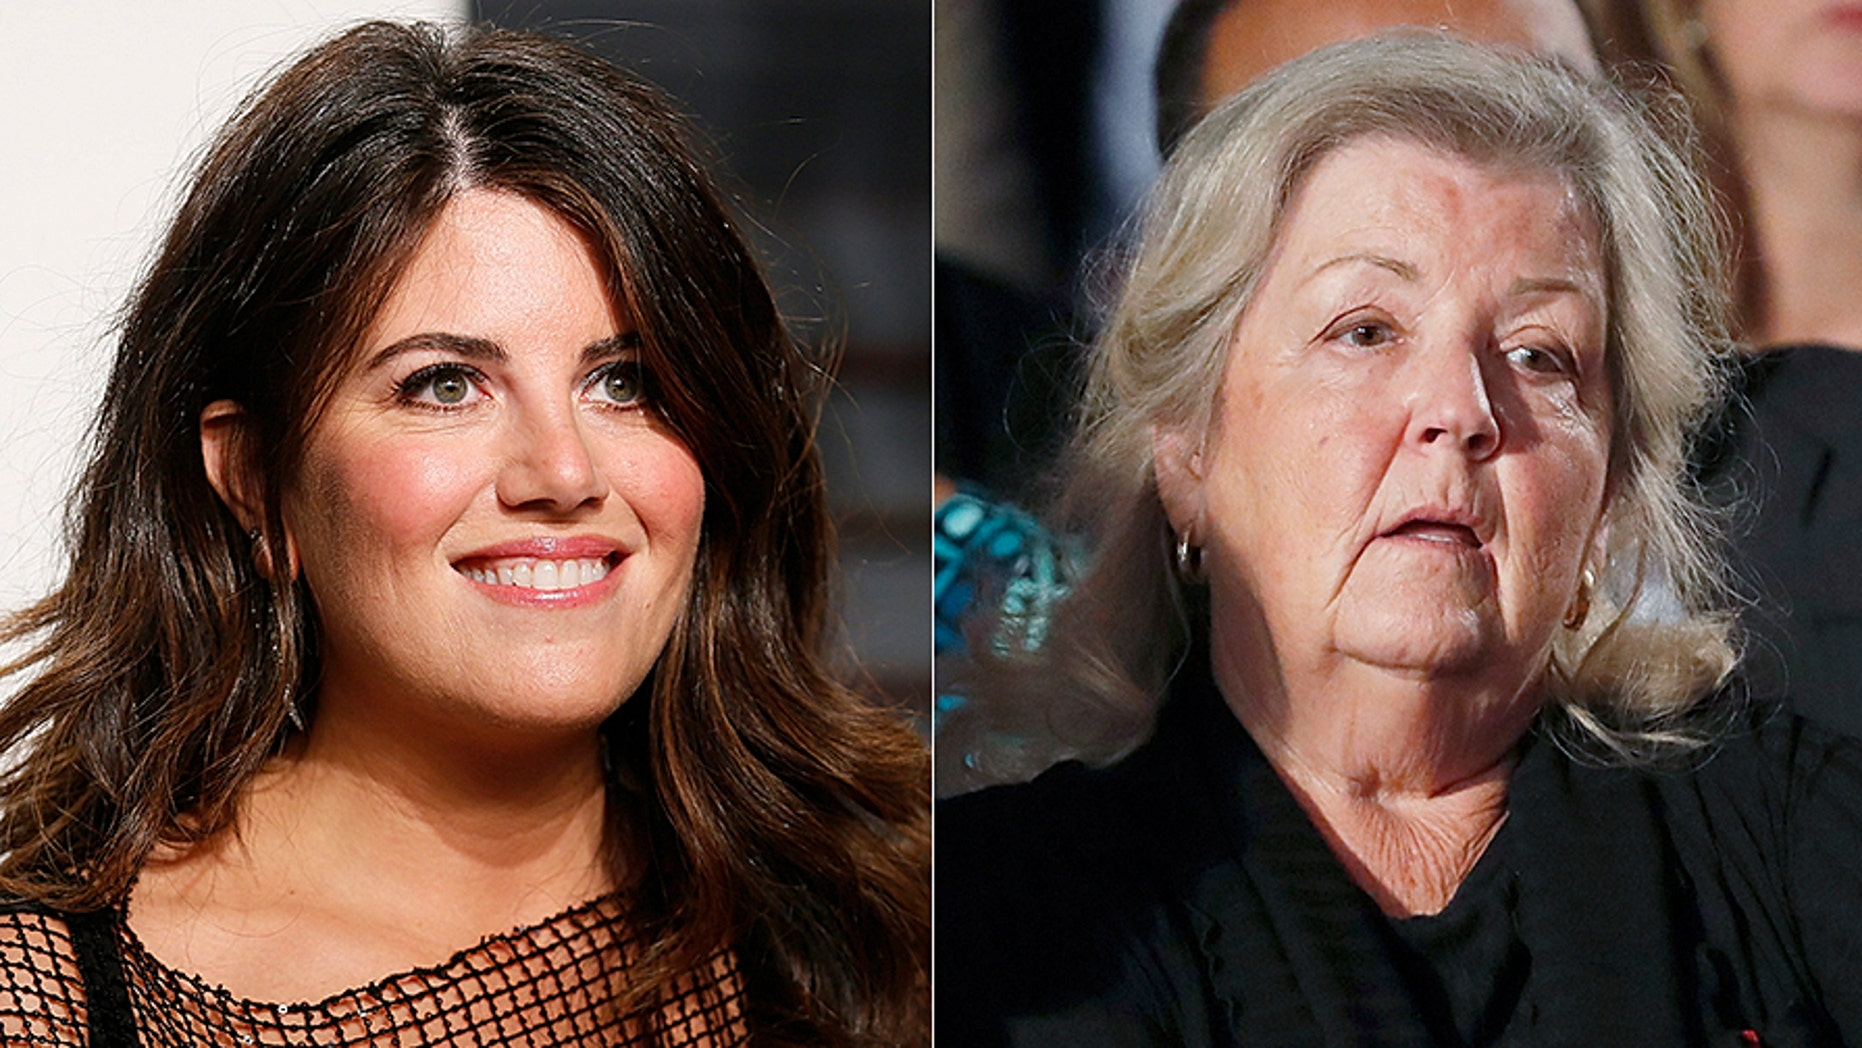 Juanita Broaddrick (right) lashed out at Monica Lewinsky (left) on Thursday after she tweeted the #MeToo hashtag, marking herself a victim of sexual harassment or assault.